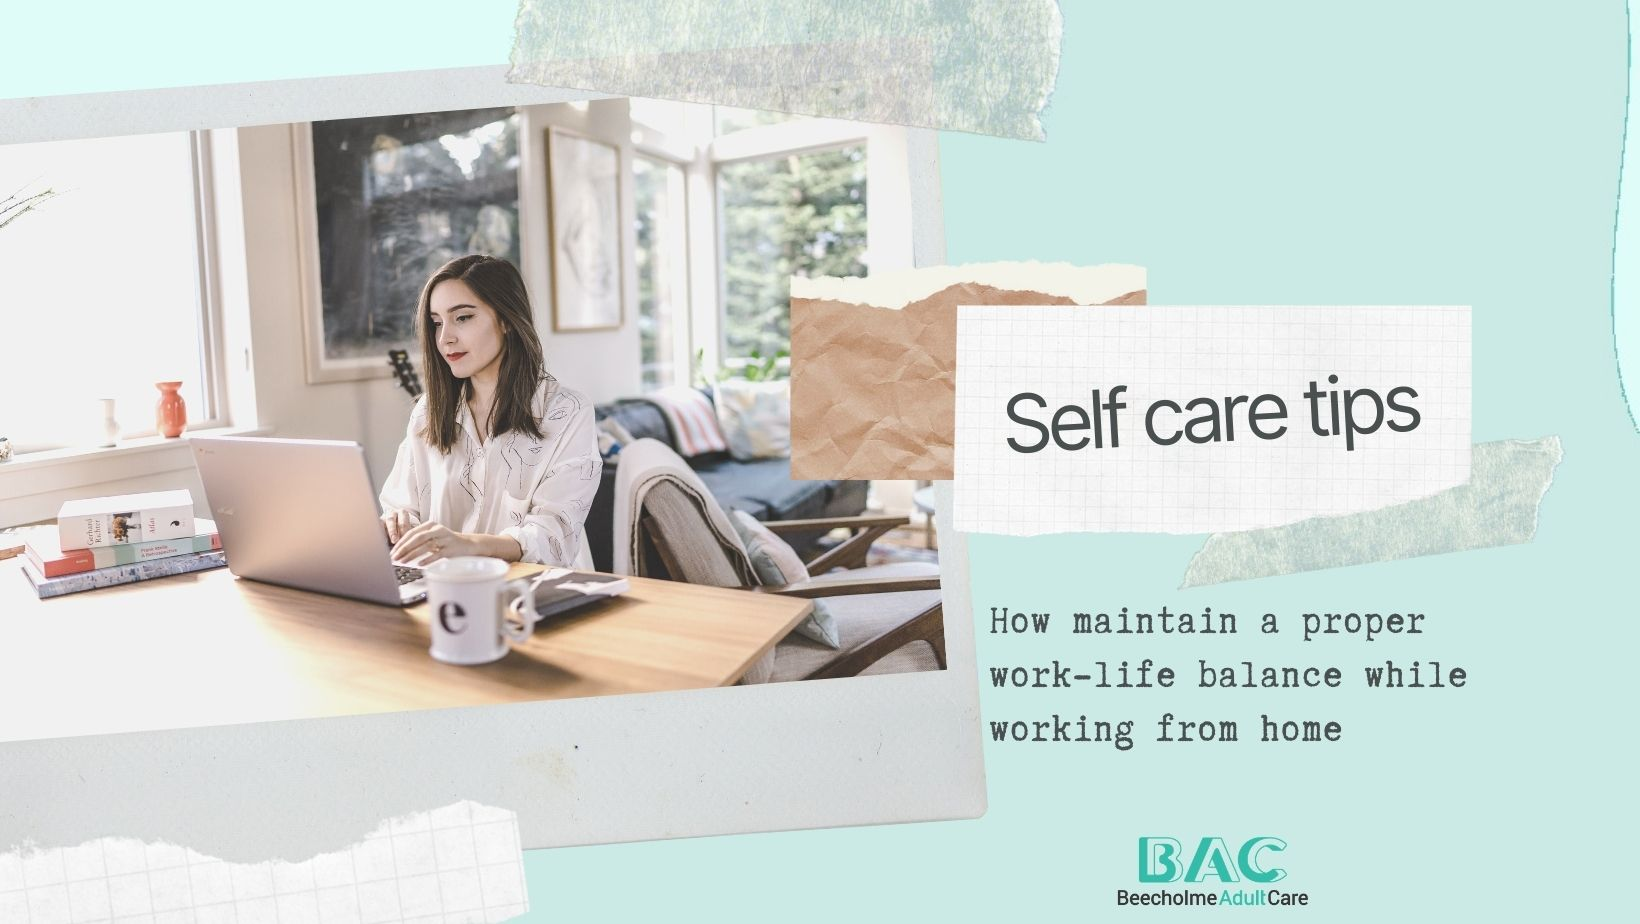 Self Care tips and WFH